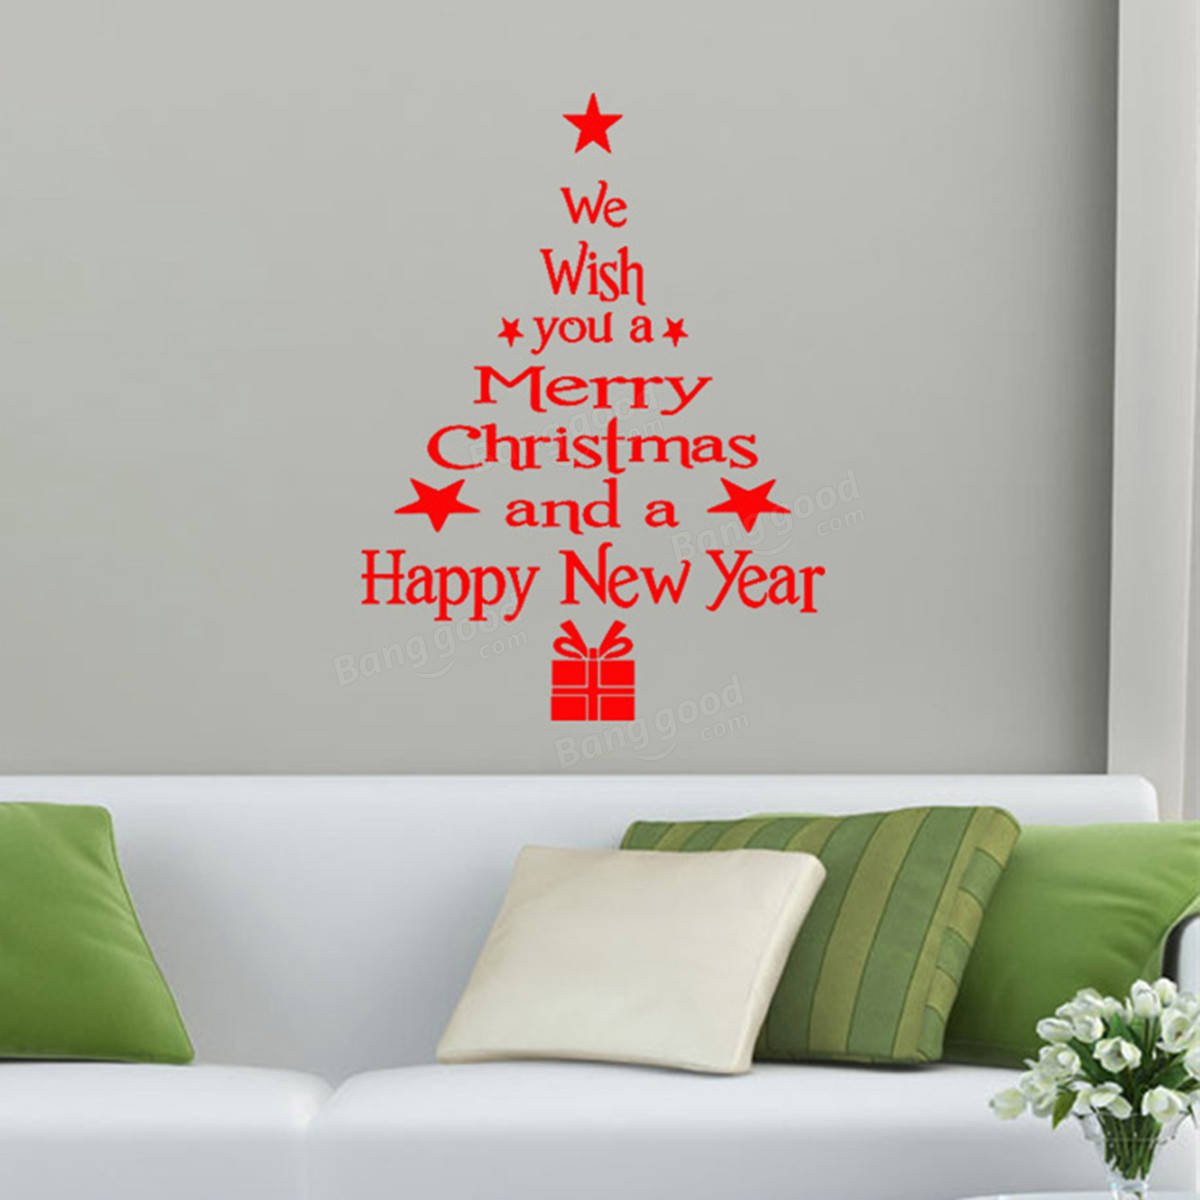 Removable Merry Christmas Tree Wall Window Sticker Home